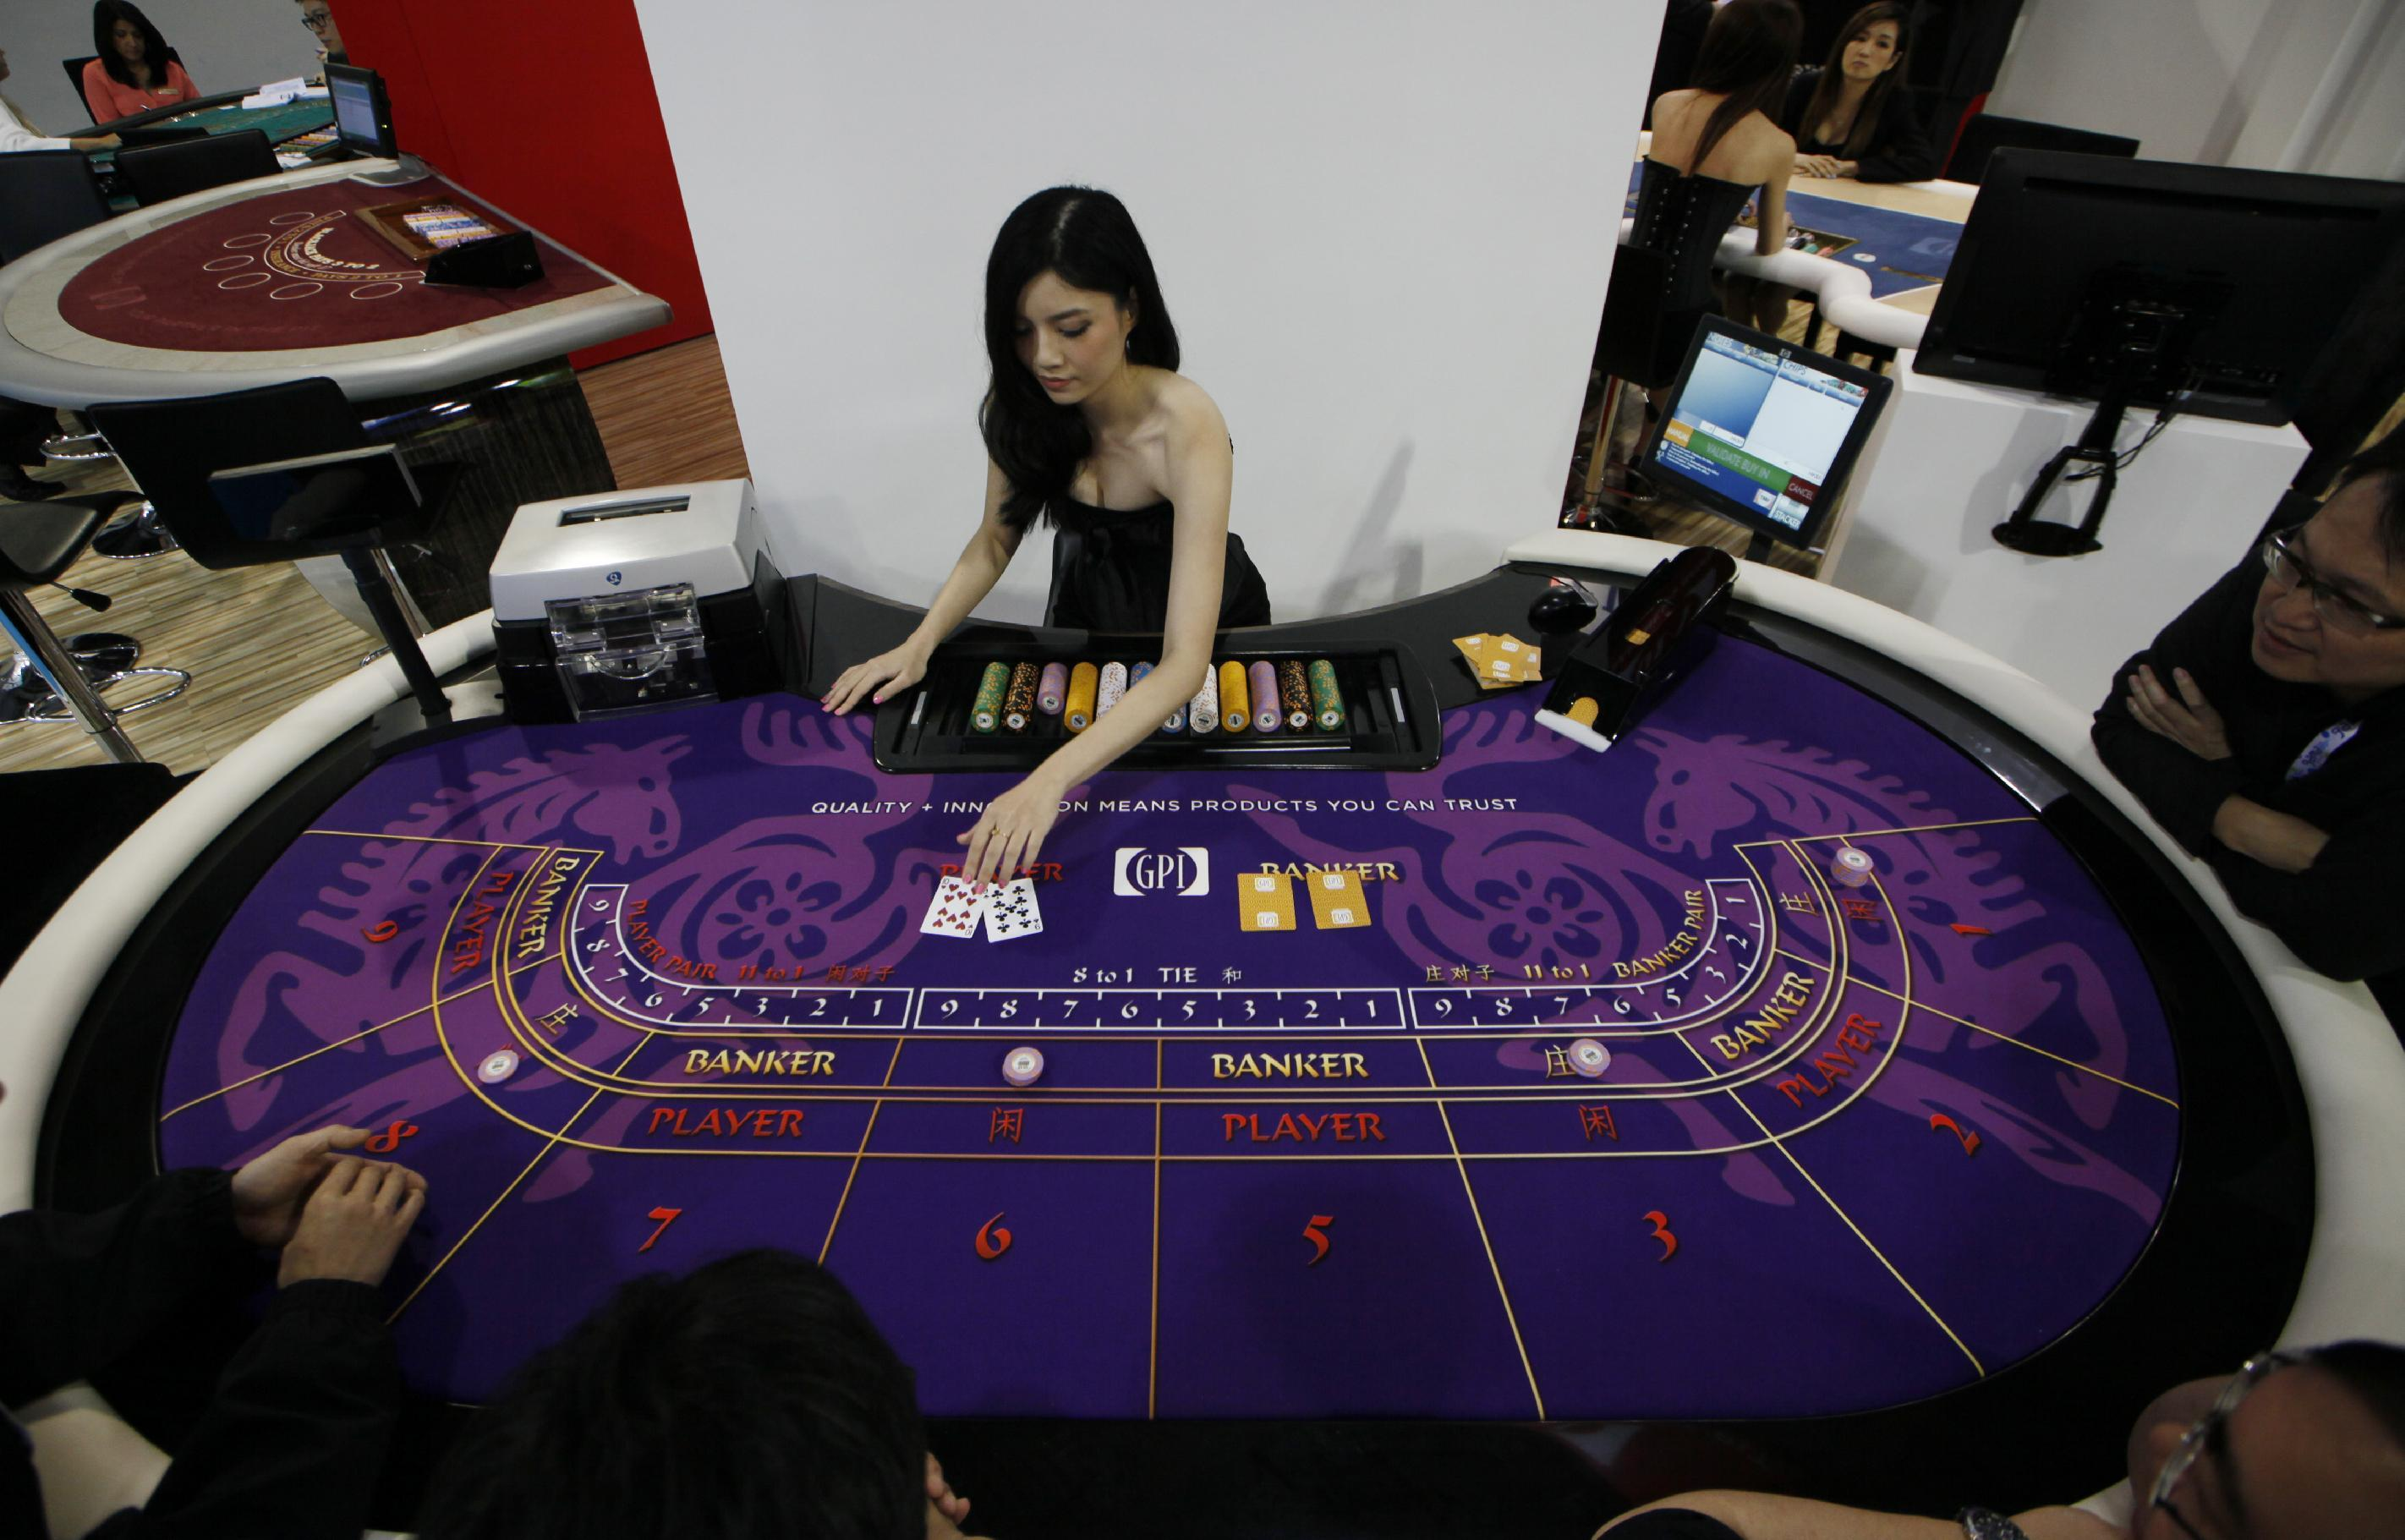 Chinese taste for baccarat drives Macau boom